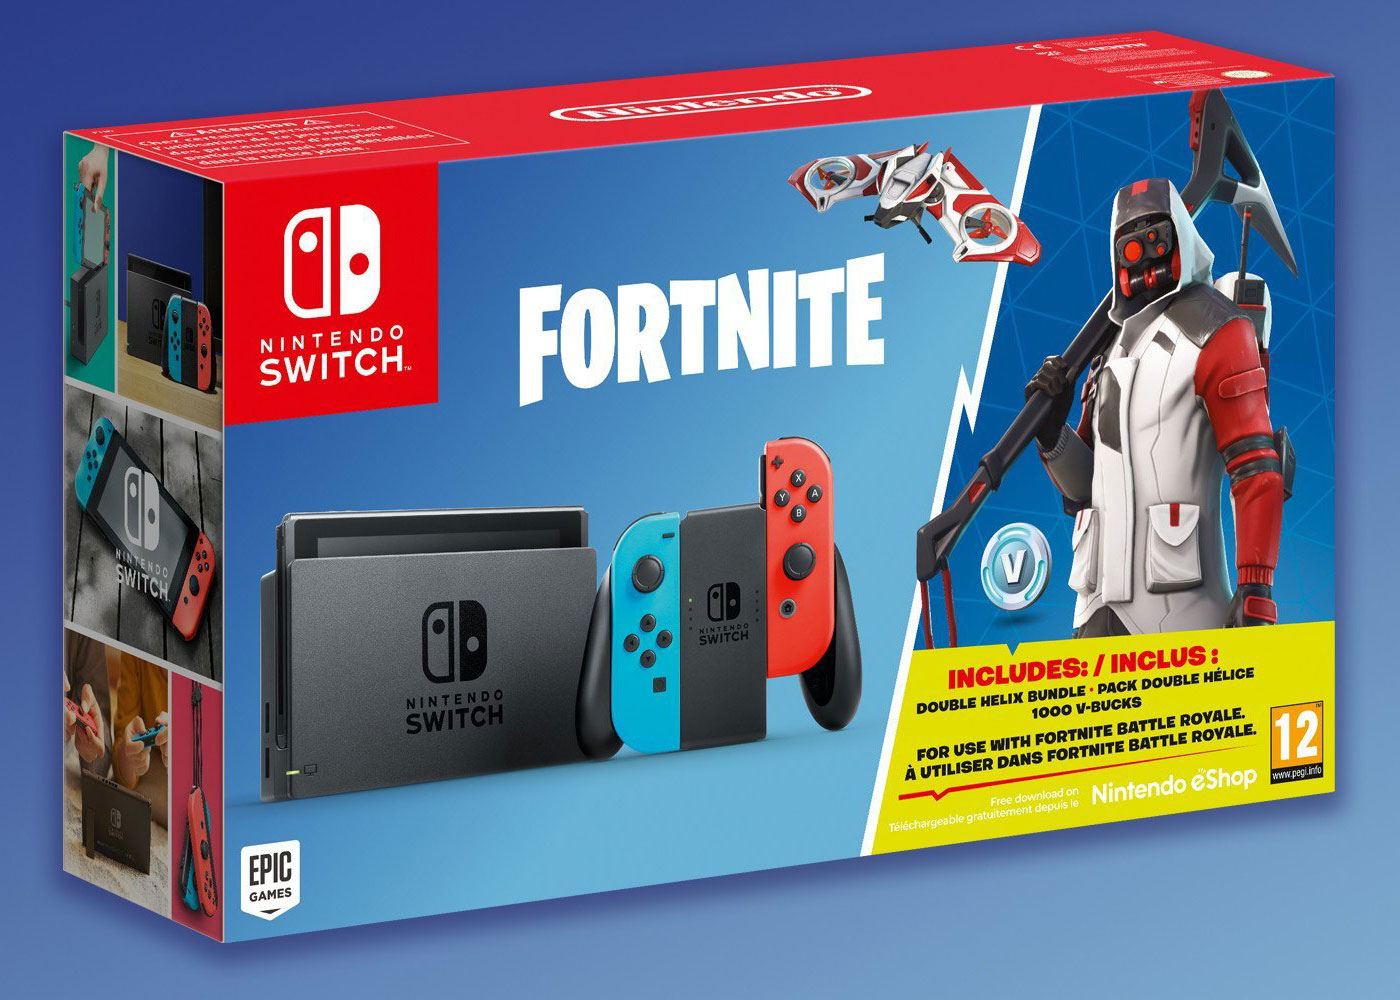 How do you get the nintendo switch exclusive fortnite skin